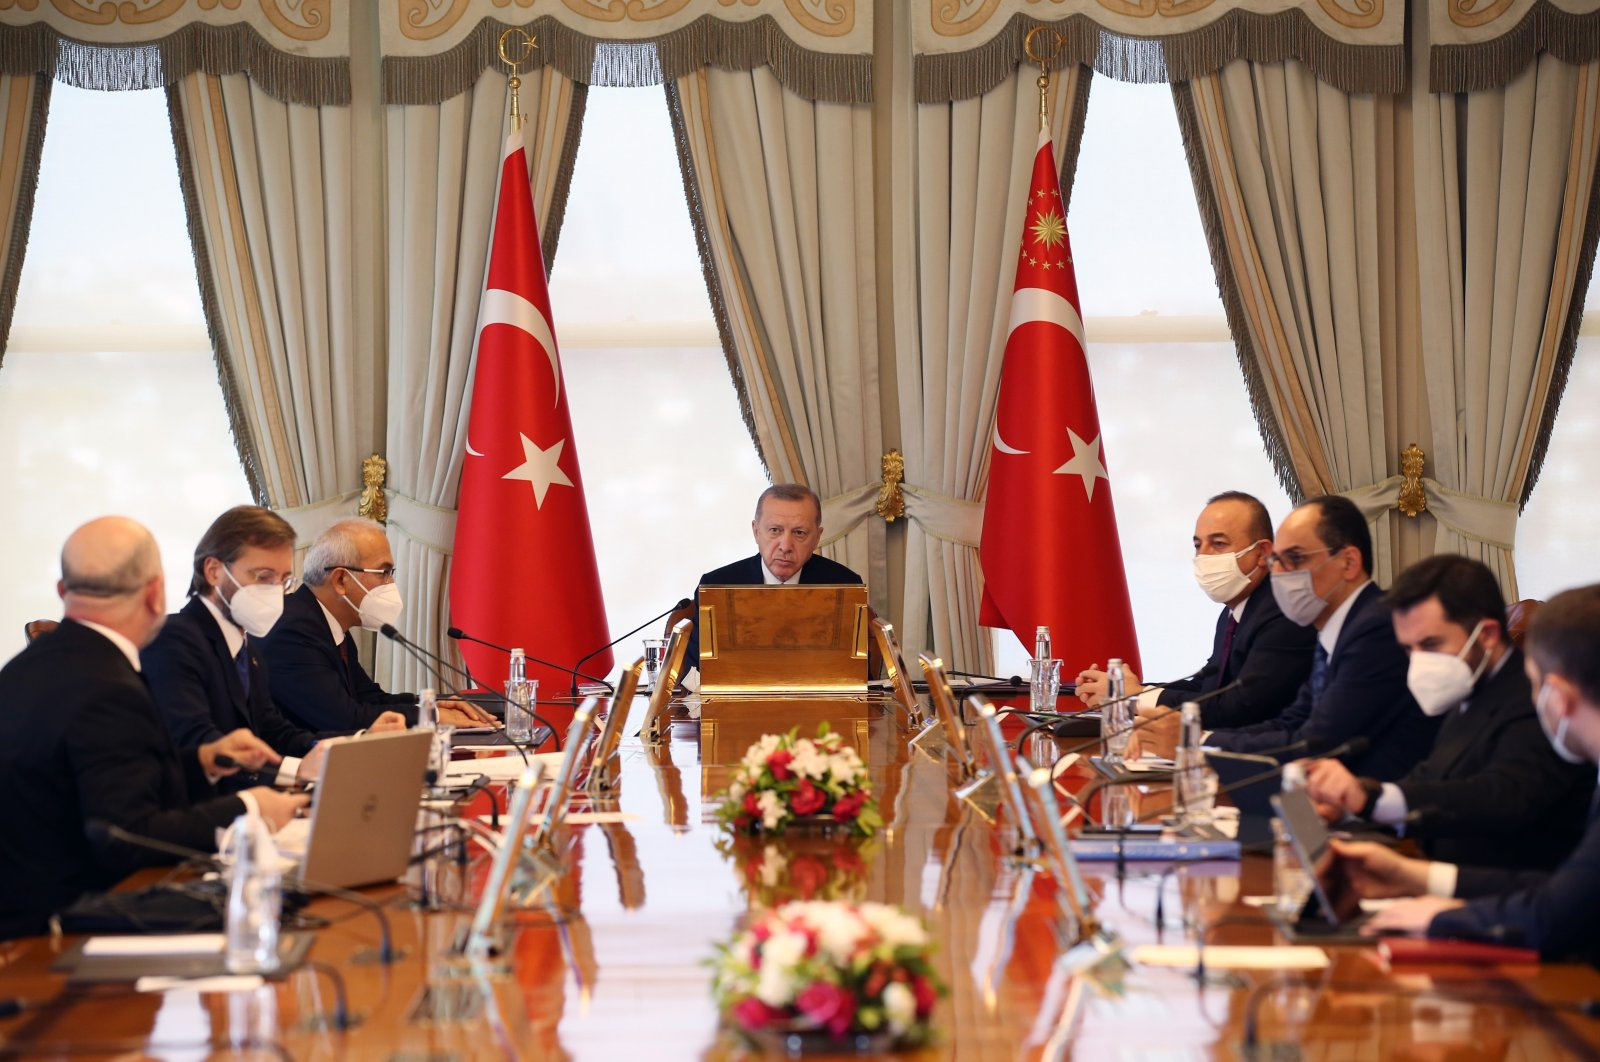 President Recep Tayyip Erdoğan, accompanied by members of the Cabinet and presidential aides, attends the G20 Summit held via videoconference, on Nov. 21, 2020. (IHA Photo)